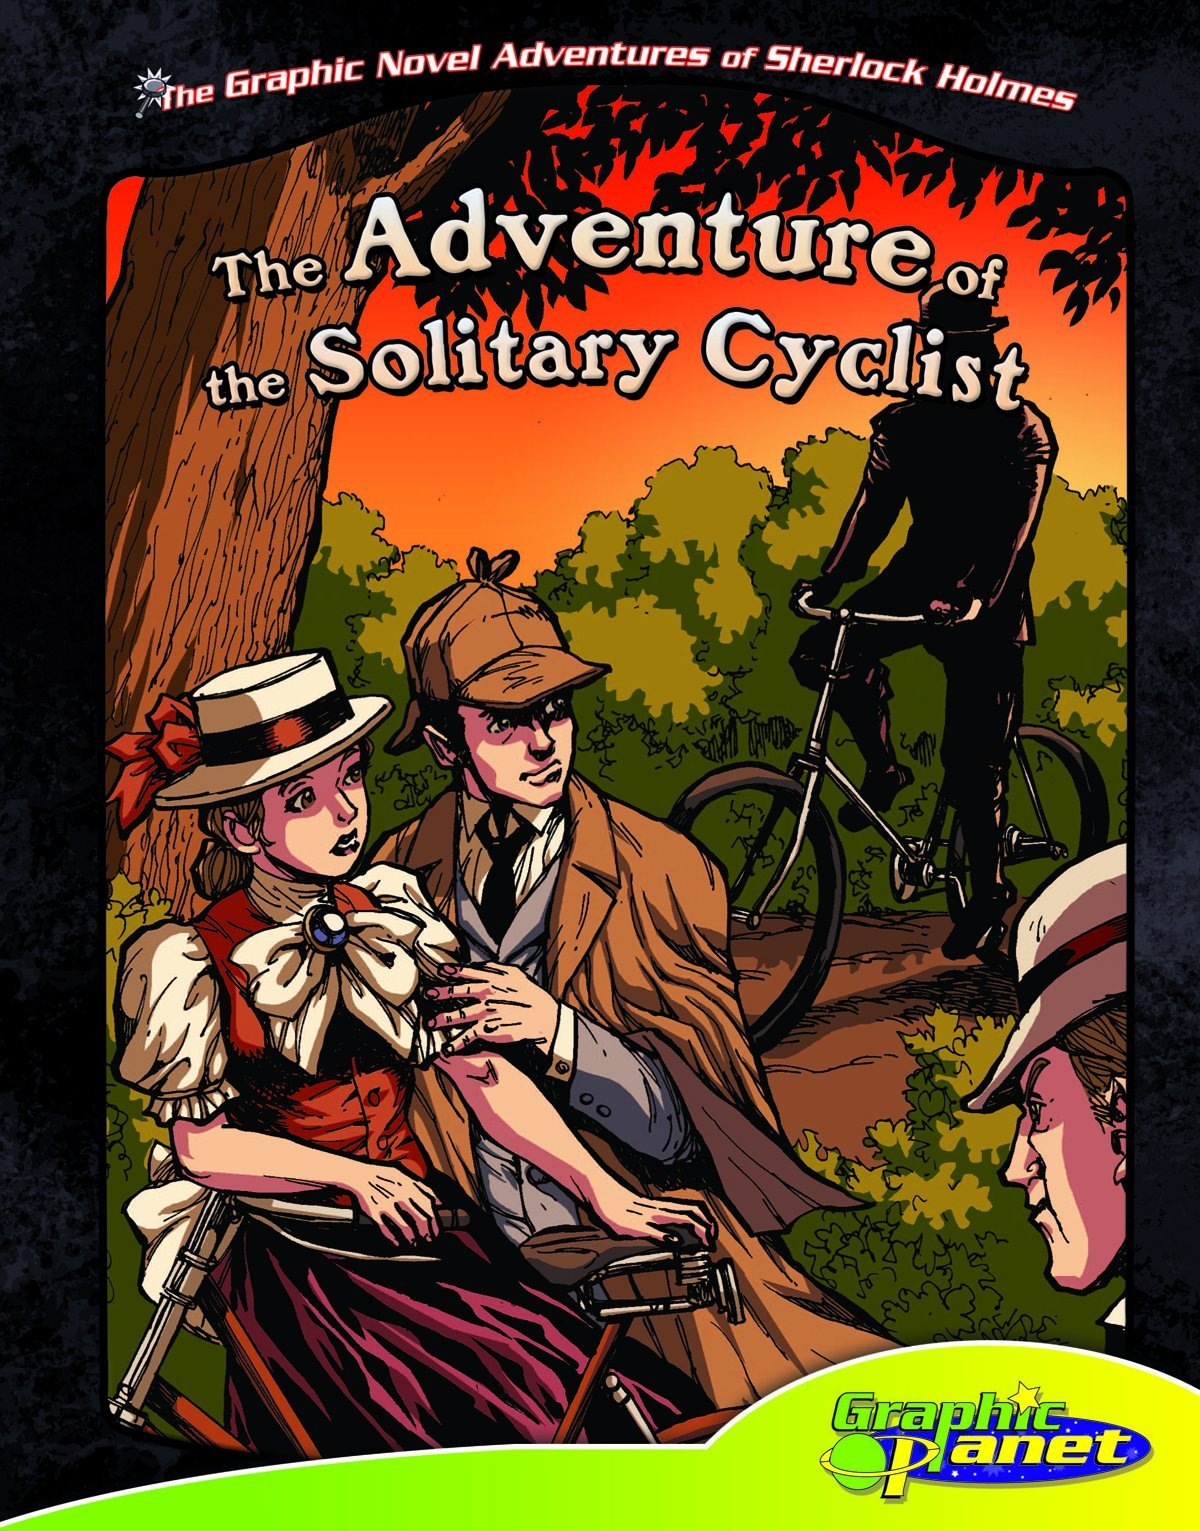 The Adventure of the Solitary Cyclist (The Graphic Novel